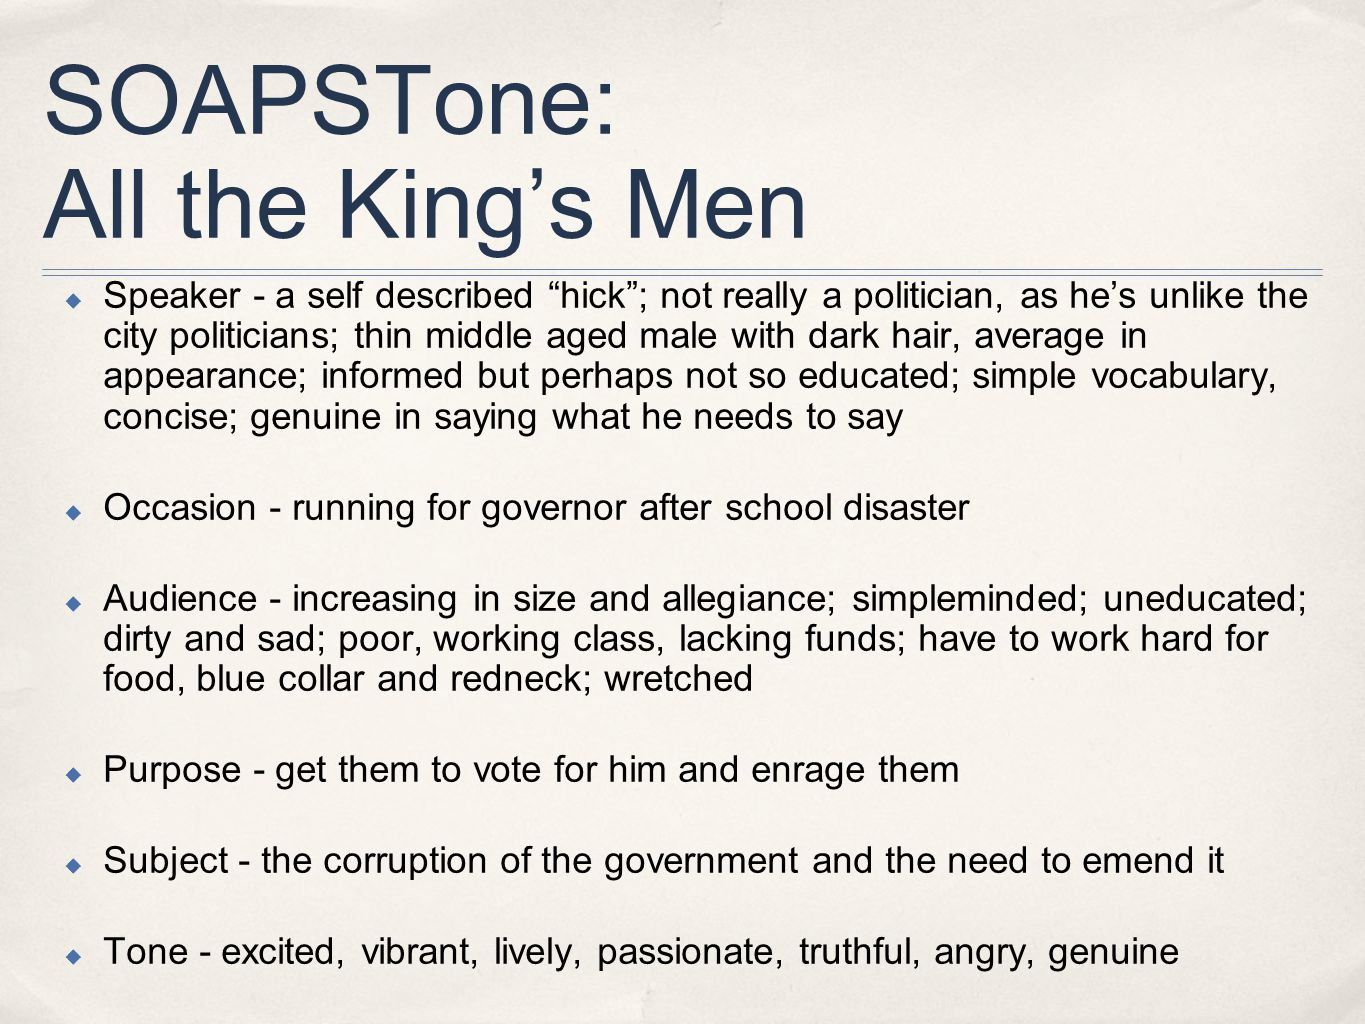 SOAPSTone: All the King's Men  Speaker - a self described hick ; not really a politician, as he's unlike the city politicians; thin middle aged male with dark hair, average in appearance; informed but perhaps not so educated; simple vocabulary, concise; genuine in saying what he needs to say  Occasion - running for governor after school disaster  Audience - increasing in size and allegiance; simpleminded; uneducated; dirty and sad; poor, working class, lacking funds; have to work hard for food, blue collar and redneck; wretched  Purpose - get them to vote for him and enrage them  Subject - the corruption of the government and the need to emend it  Tone - excited, vibrant, lively, passionate, truthful, angry, genuine